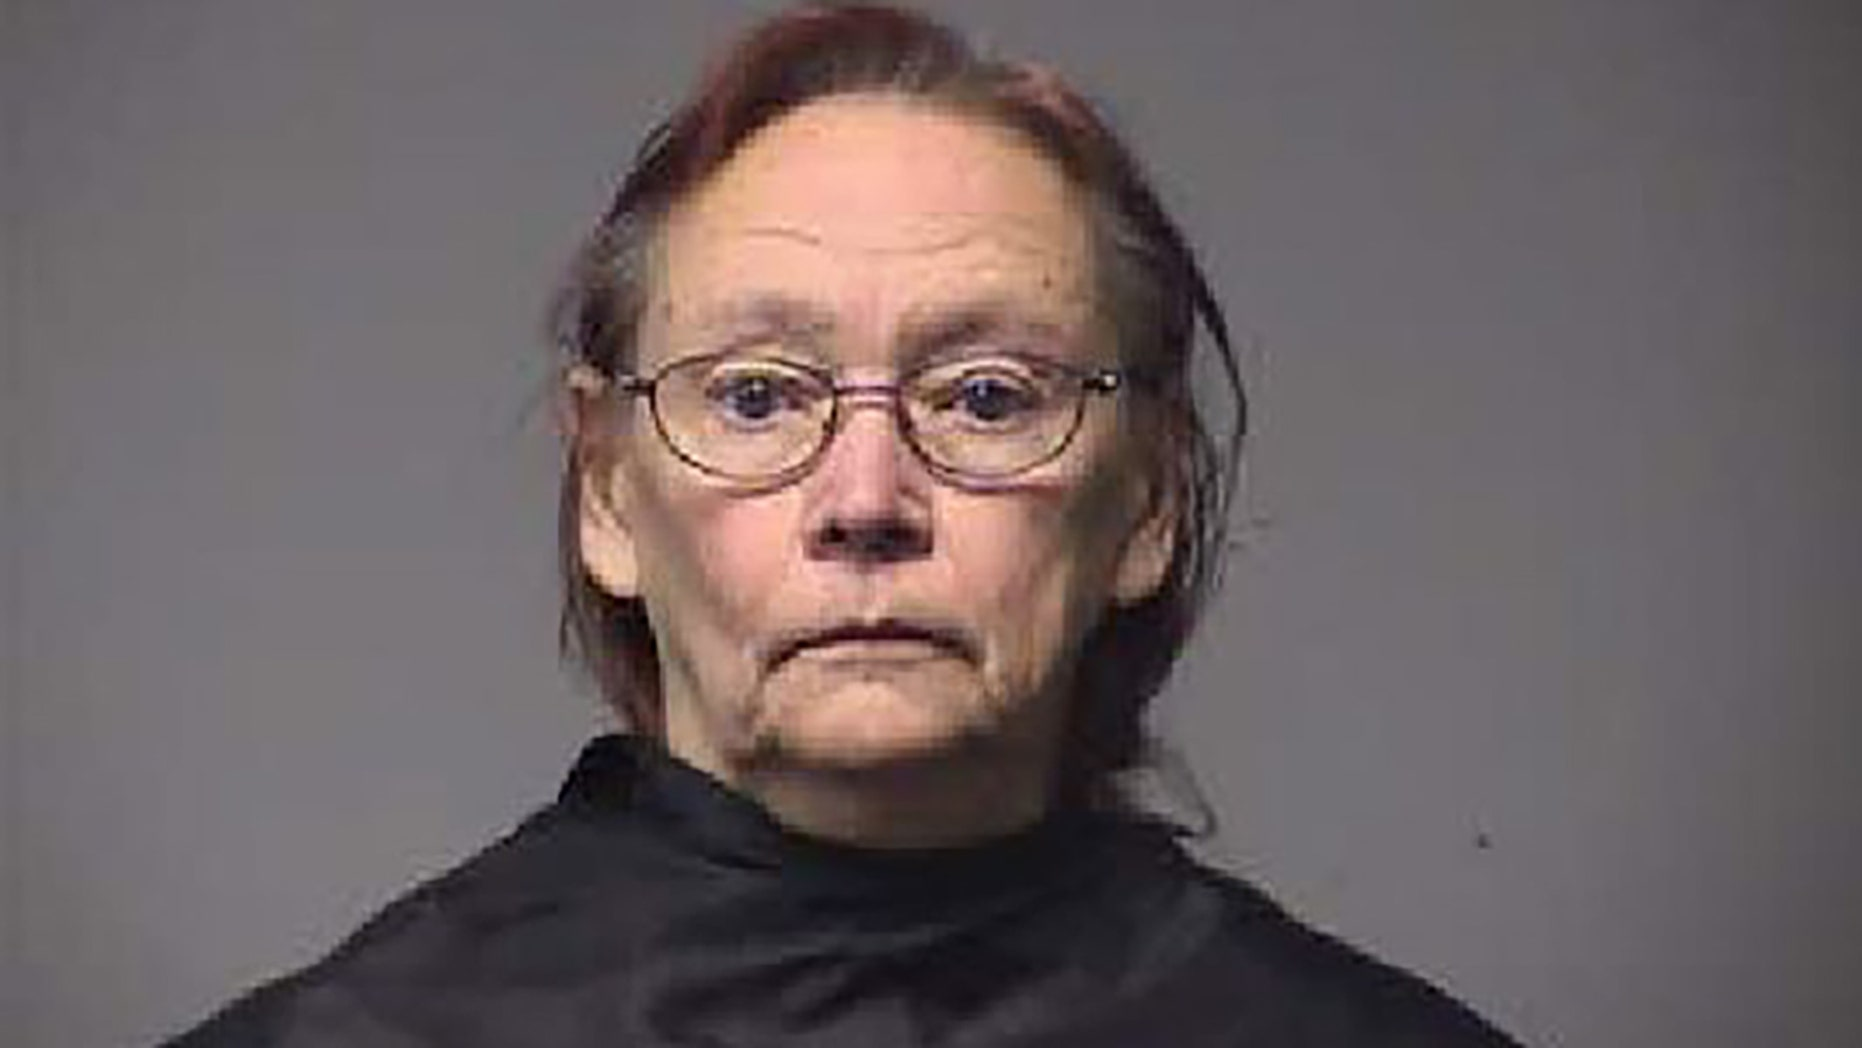 """Margaret Sue Tennis, 60, was charged with third-degree assault and battery after allegedly spanking a boy with a paddle known as """"Bob,"""" a report said."""